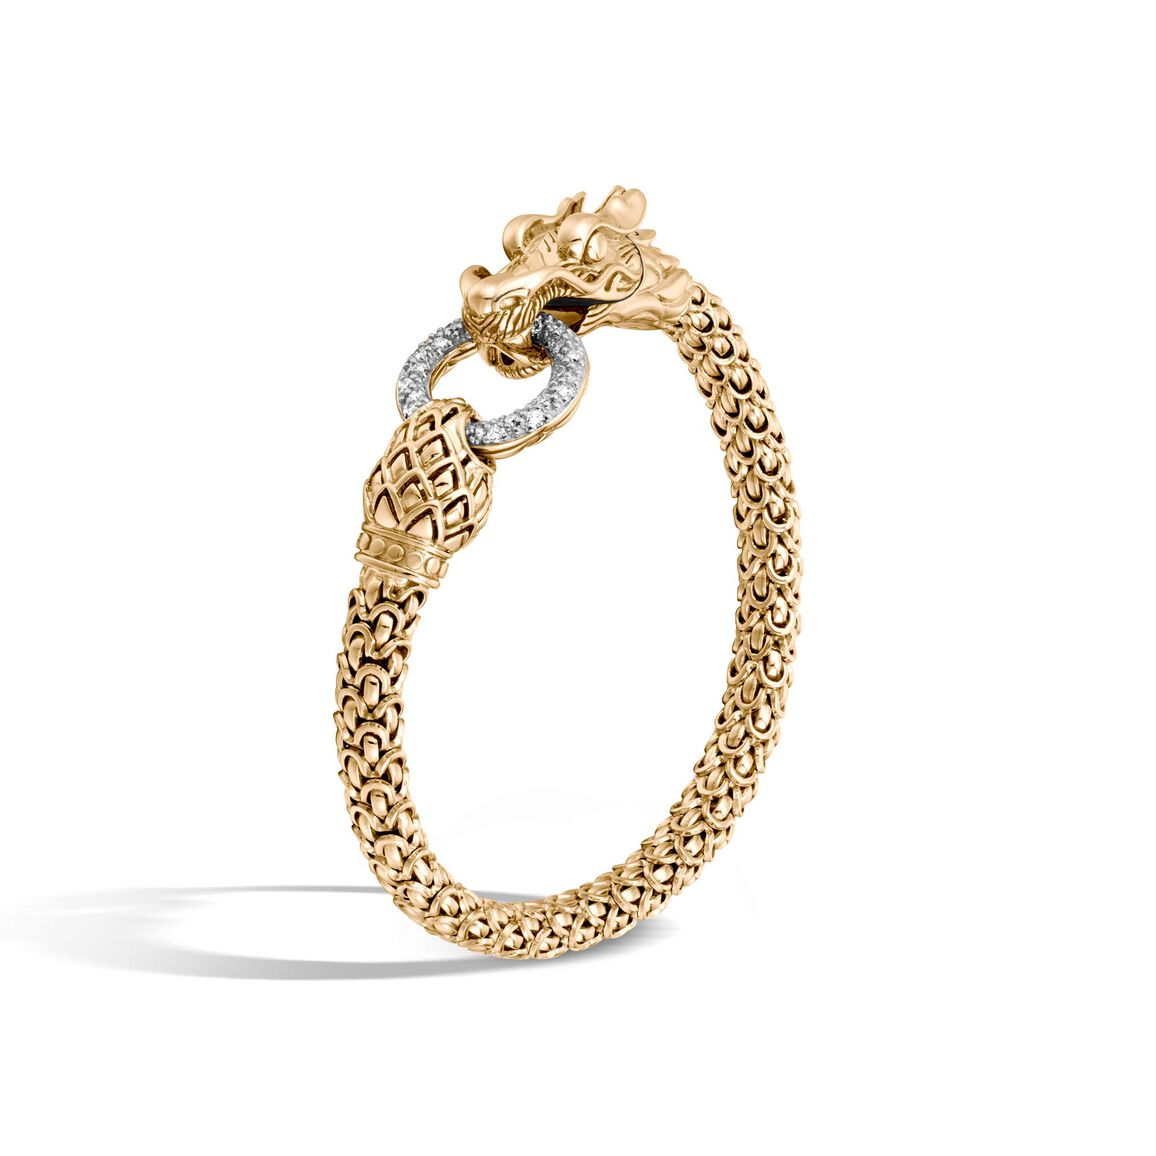 Legends Naga 6MM Station Bracelet in 18K Gold with Diamonds